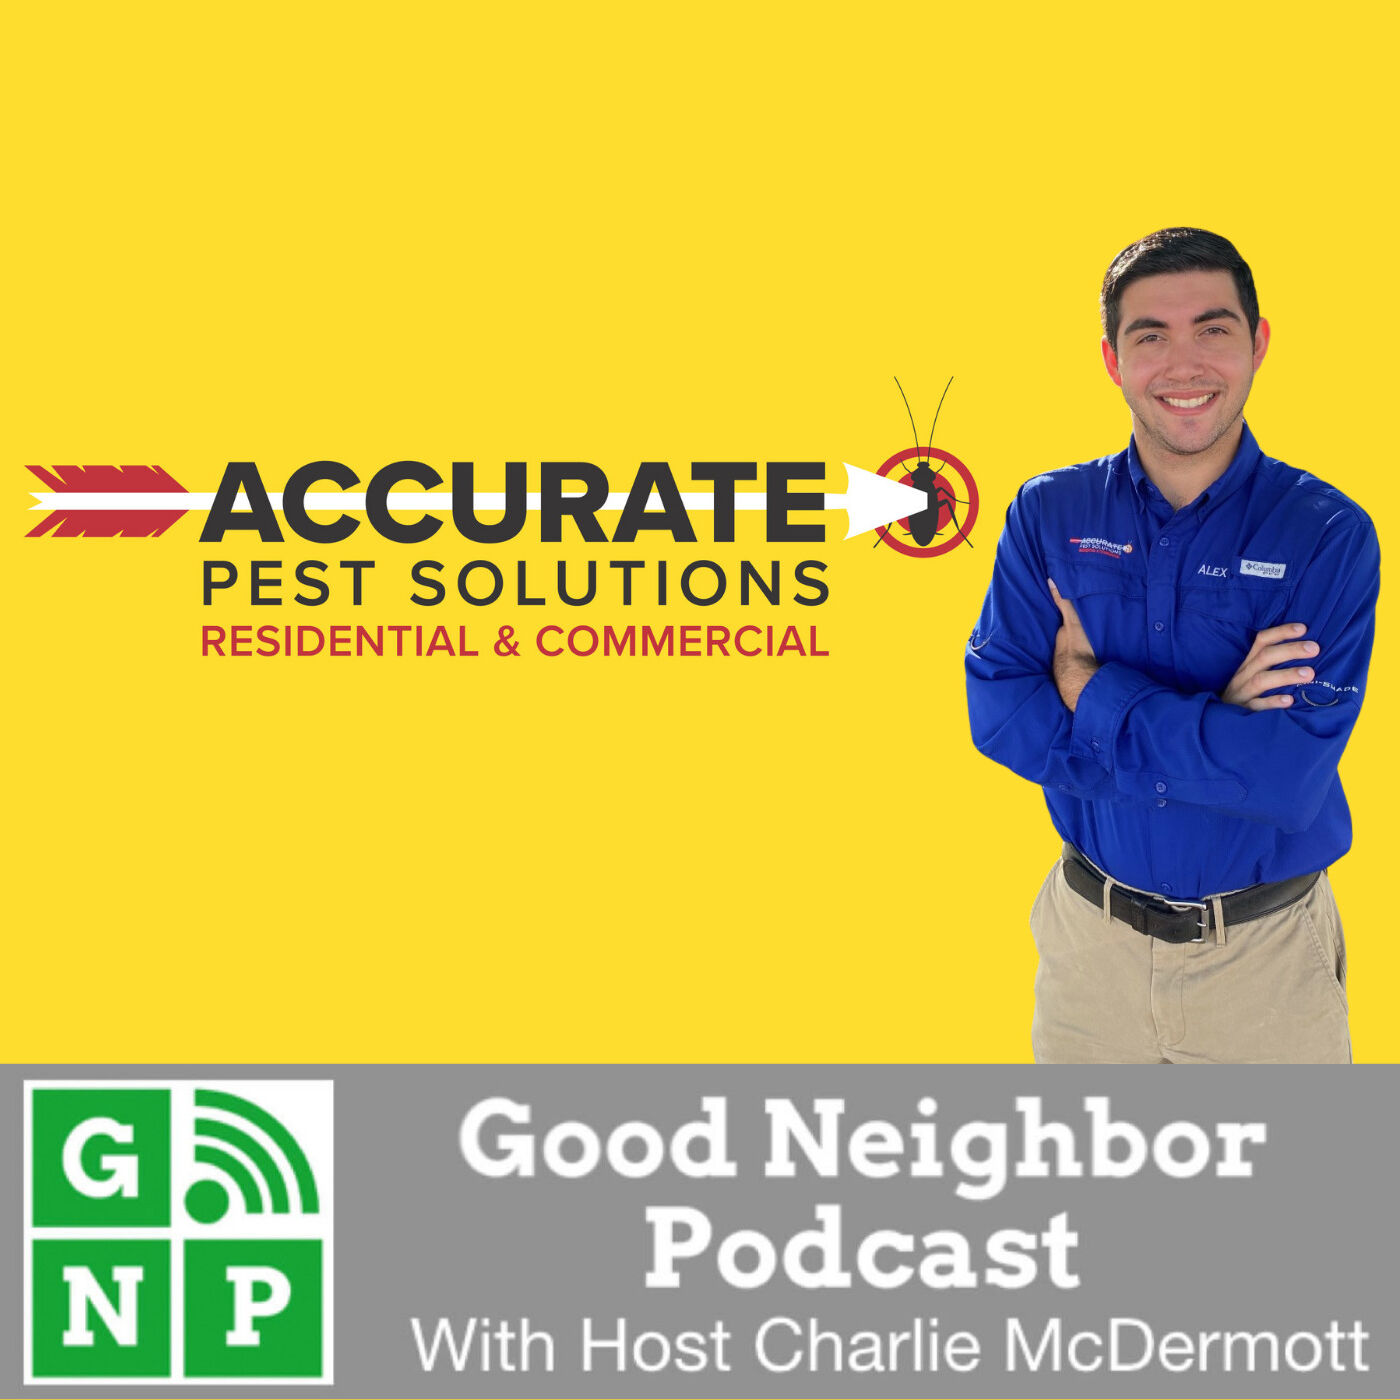 EP #488: Accurate Pest Solutions with Alex Runco